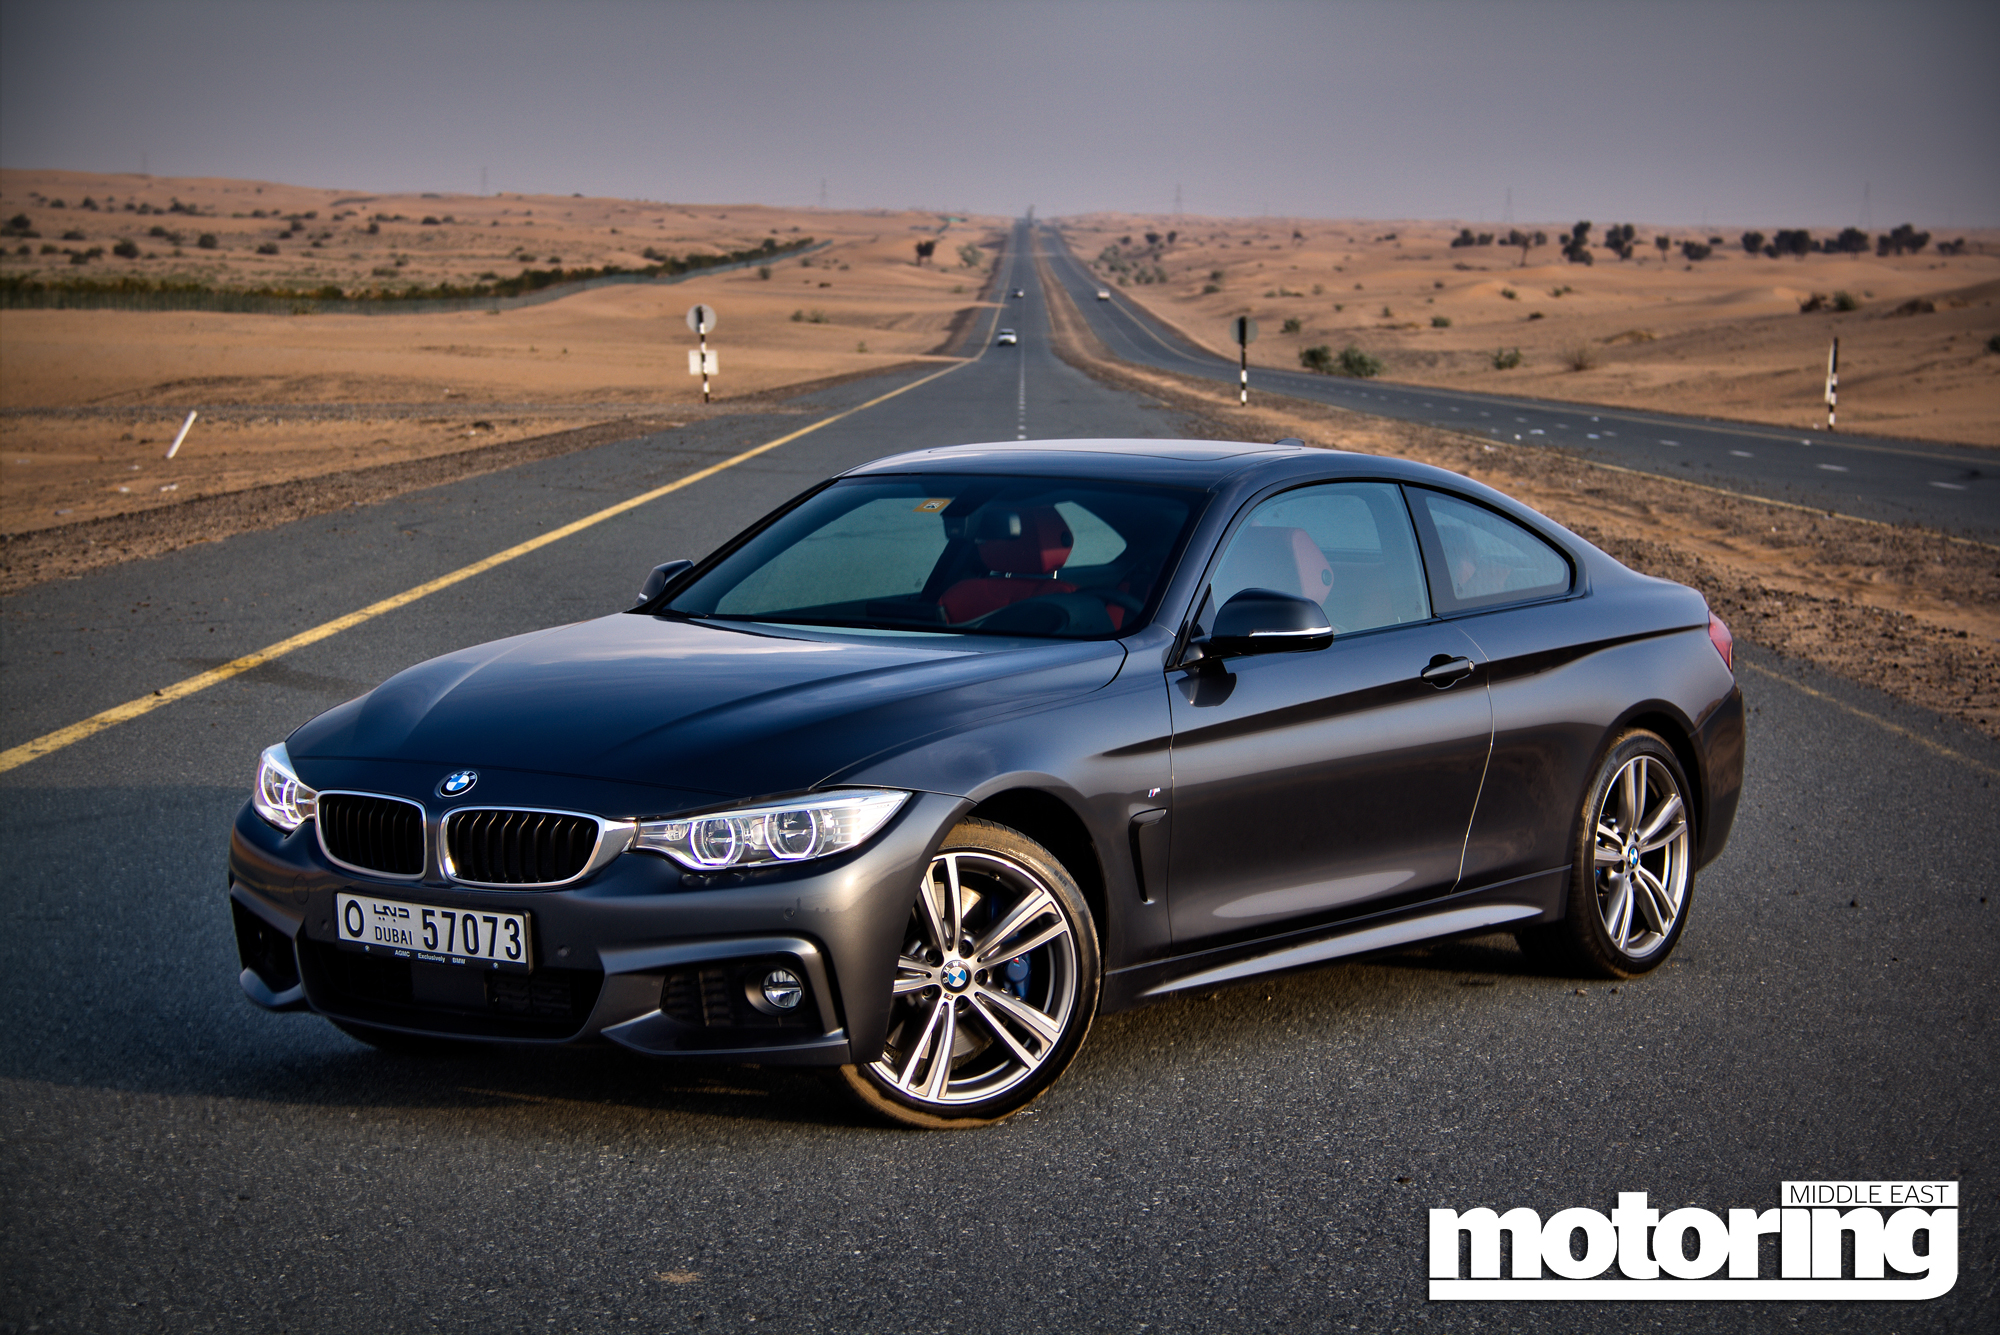 hight resolution of bmw 435i coupe m sport review in dubai